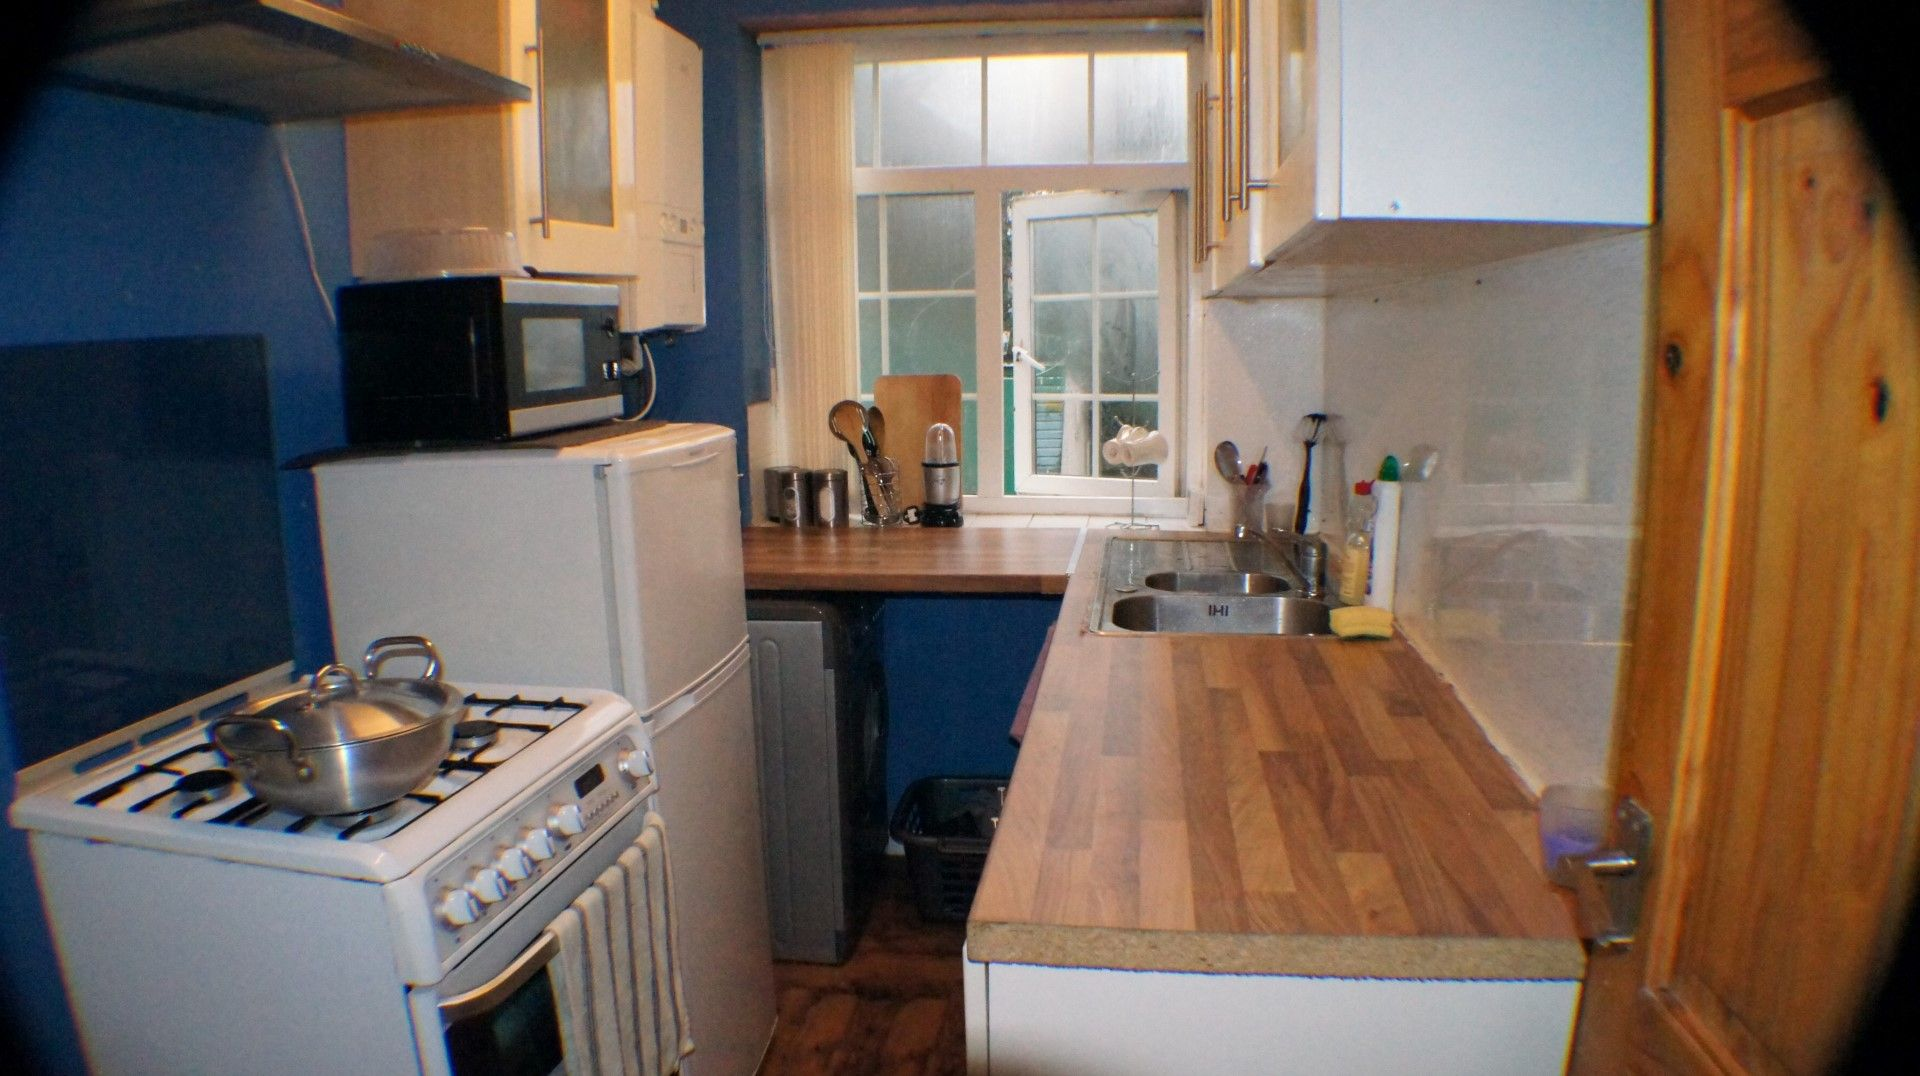 3 bedroom semi-detached house Let Agreed in Bradford - Photograph 3.